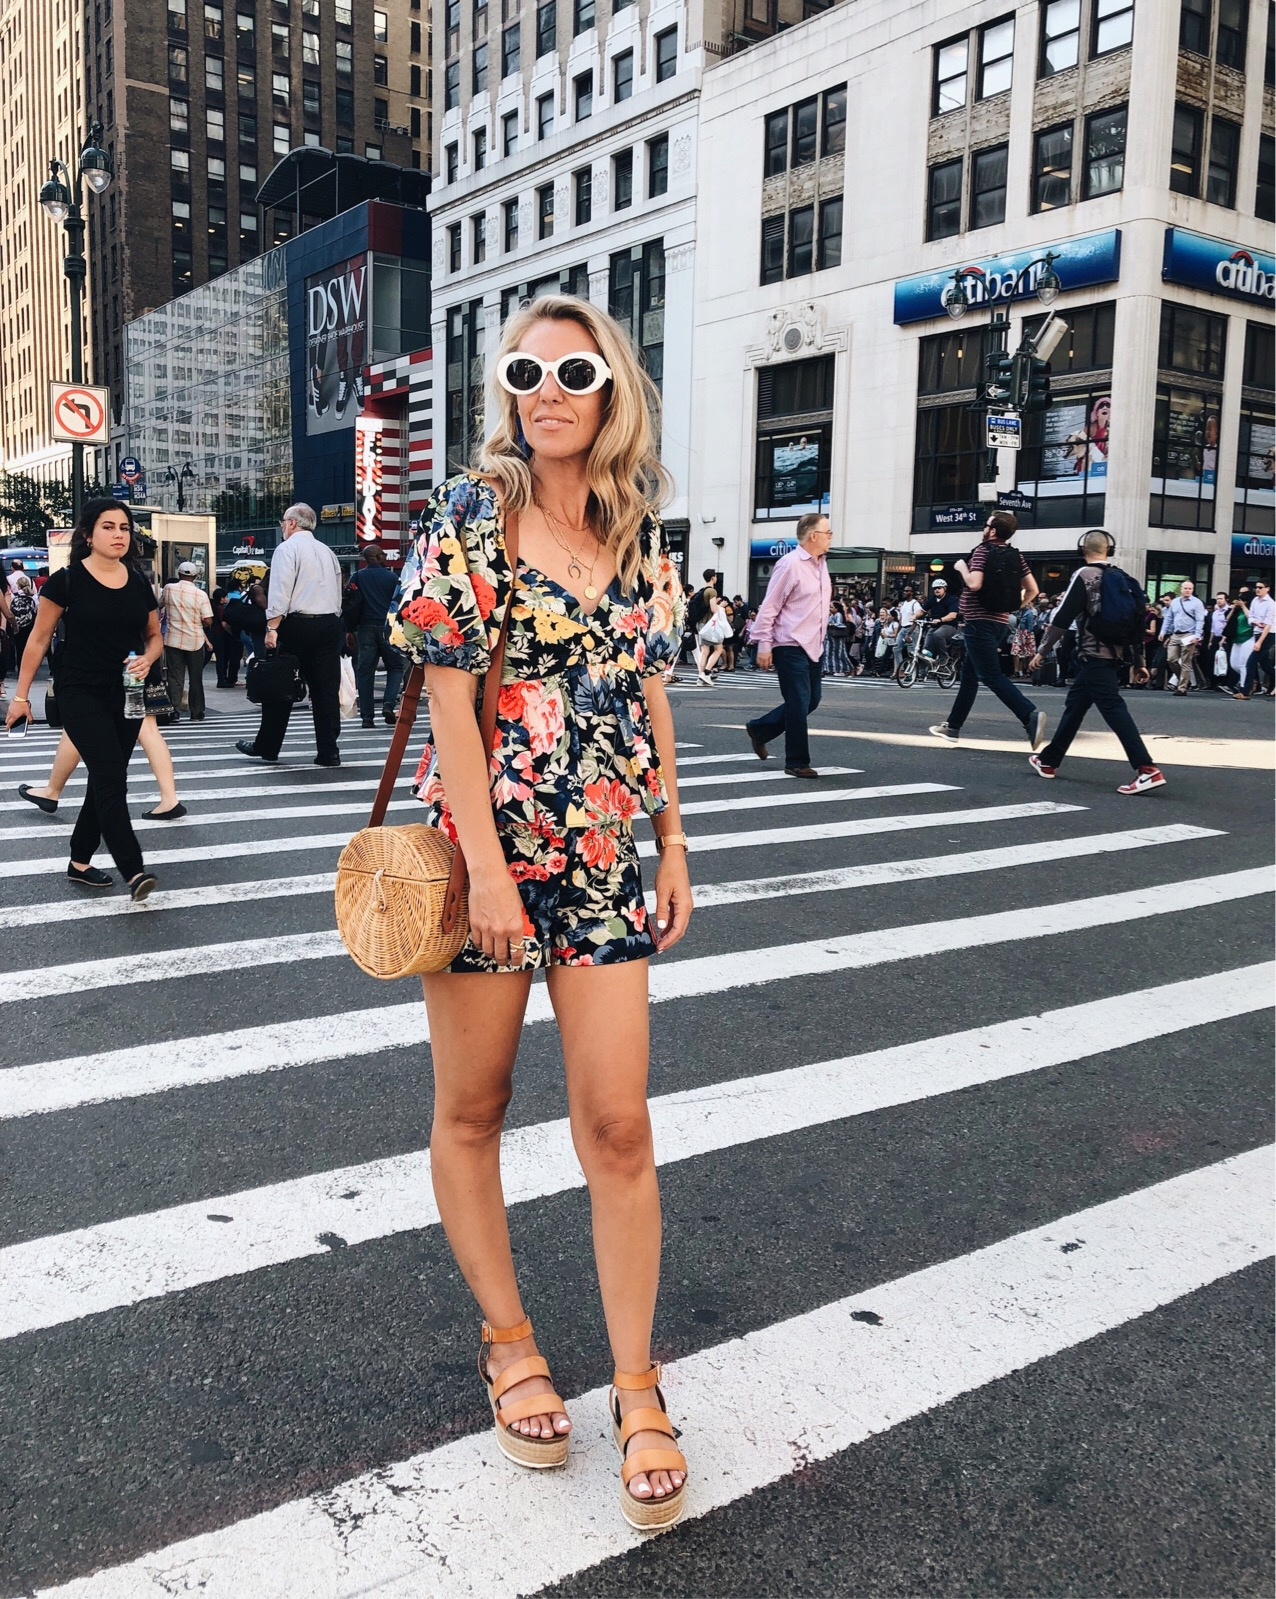 ADVENTURES IN NEW YORK- Jaclyn De Leon Style + Zara floral matching set + NY Street style + platform sandals + straw crossbody handbag + retro style sunglasses + ruffle shorts + statement sleeve + what to wear this summer + casual spring style